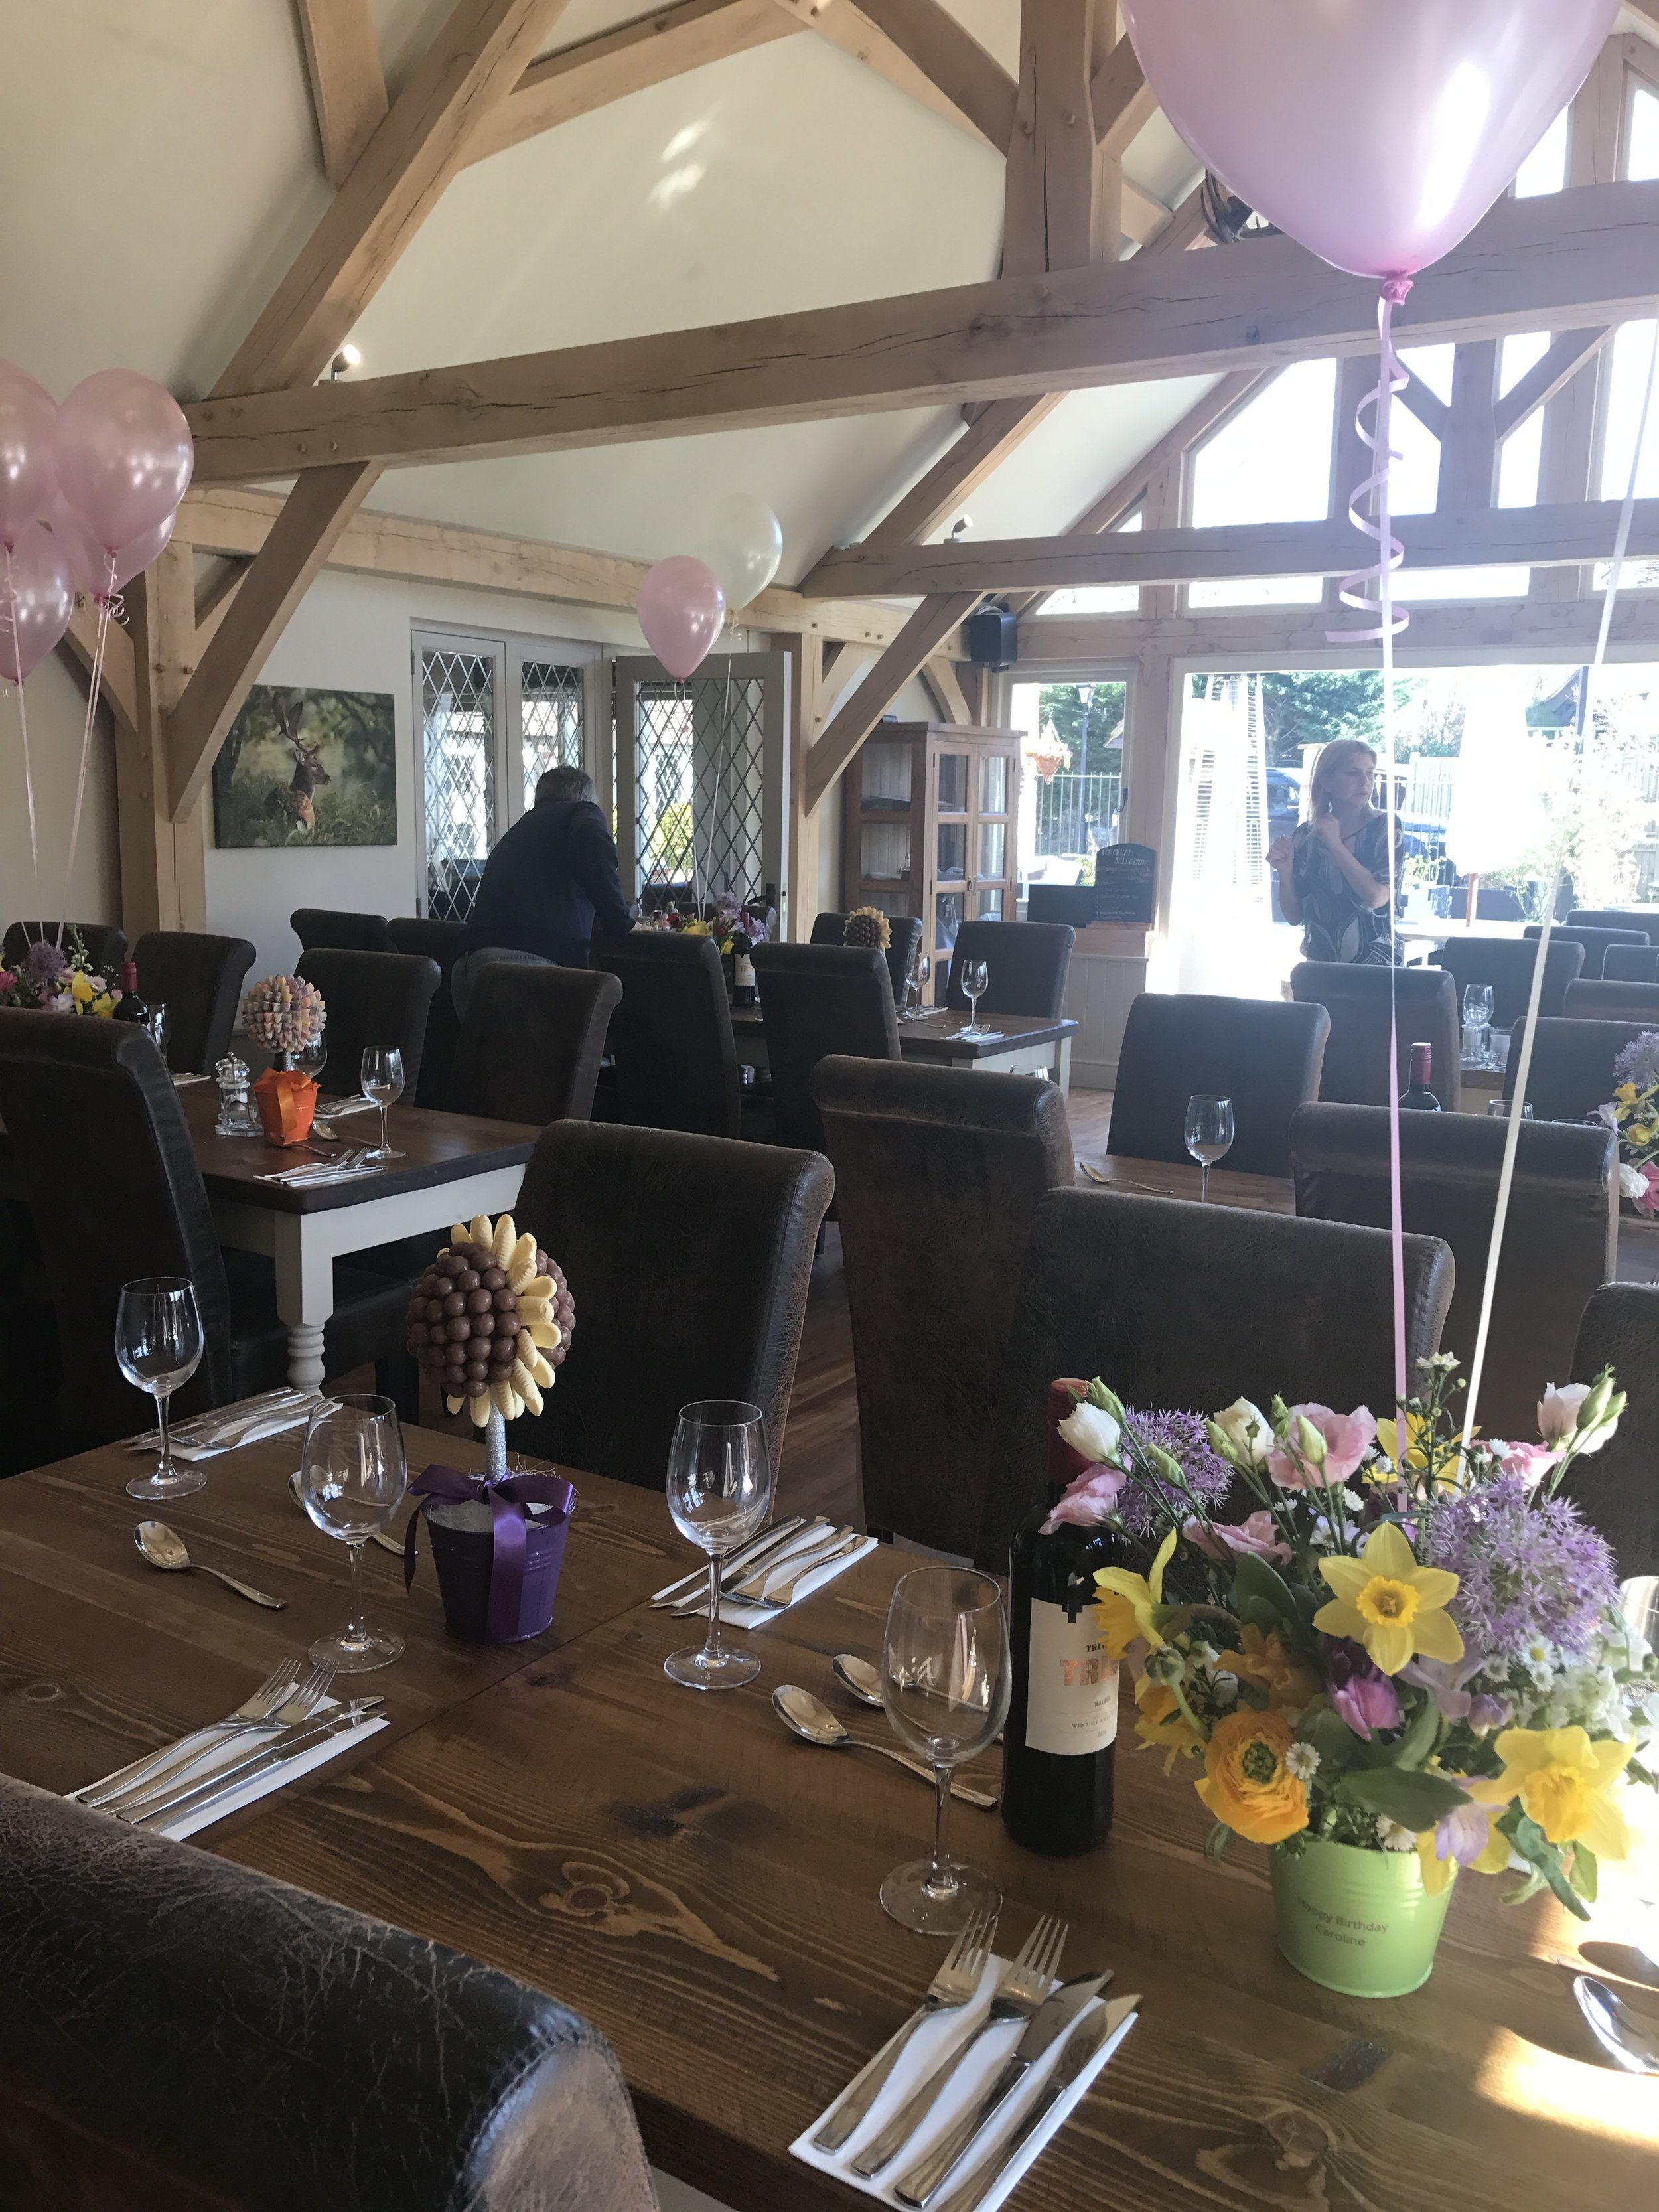 The barn set up for a birthday party - Availabe for private hire 7 days a week please give us a call or email to enquire about catering options and pricing.